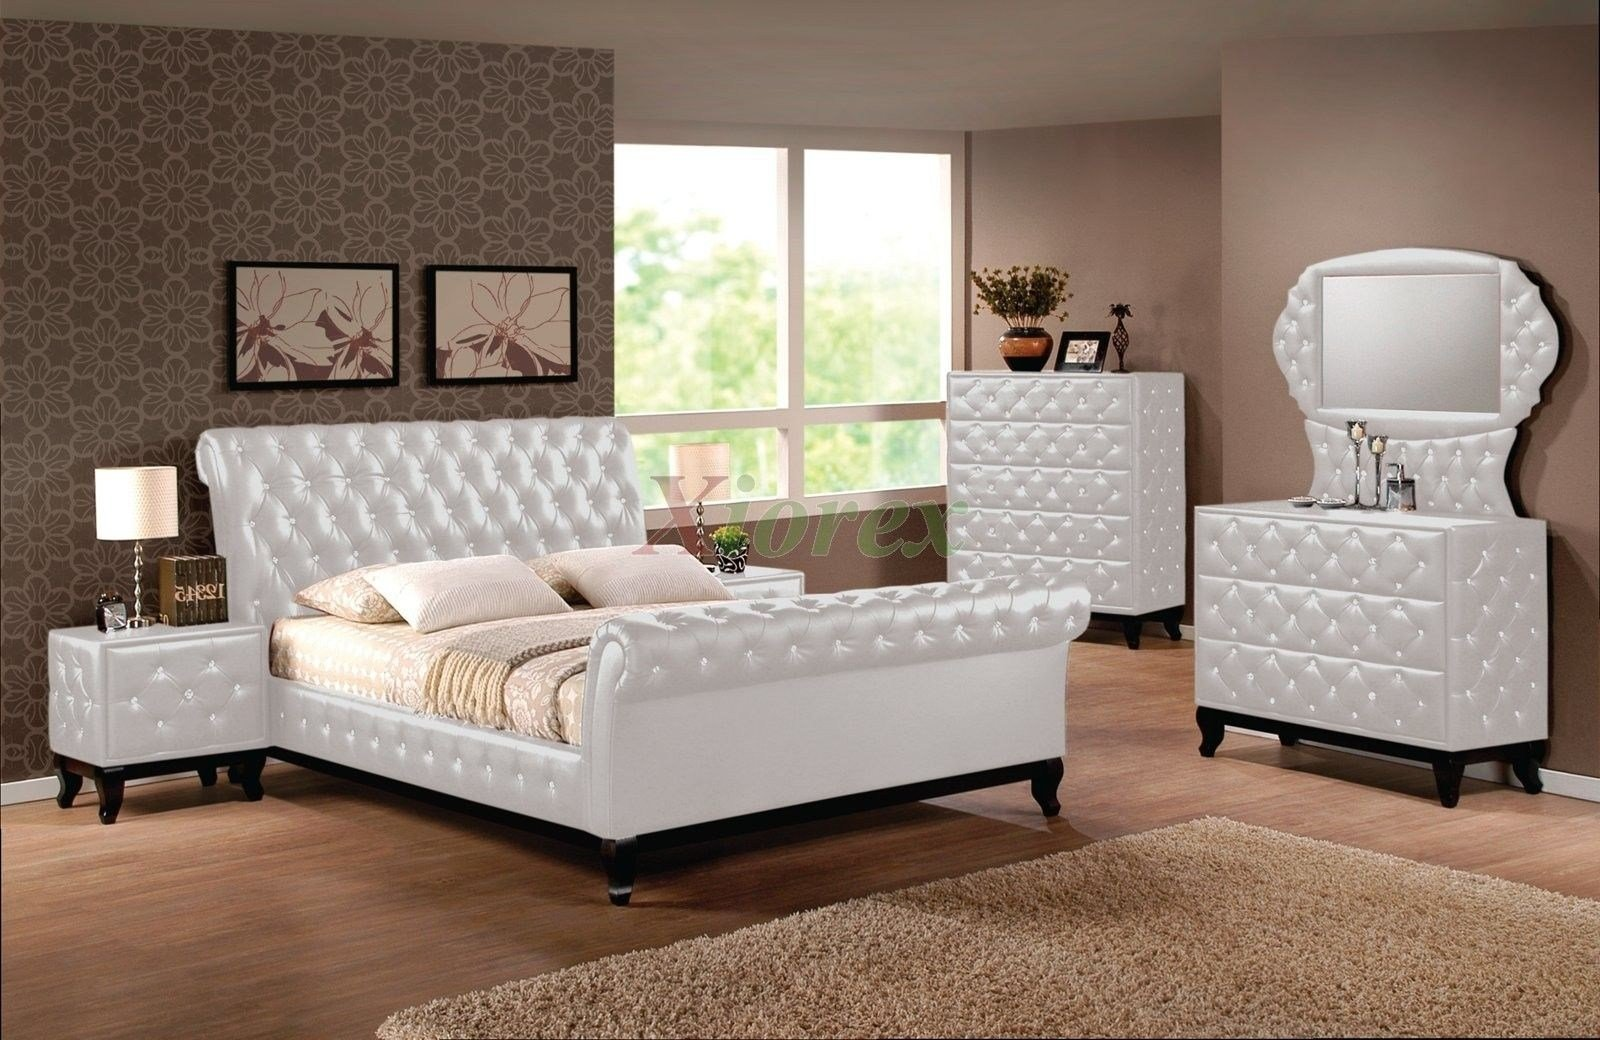 Best Stores That Sell Bedroom Furniture Interior Design Ideas With Pictures